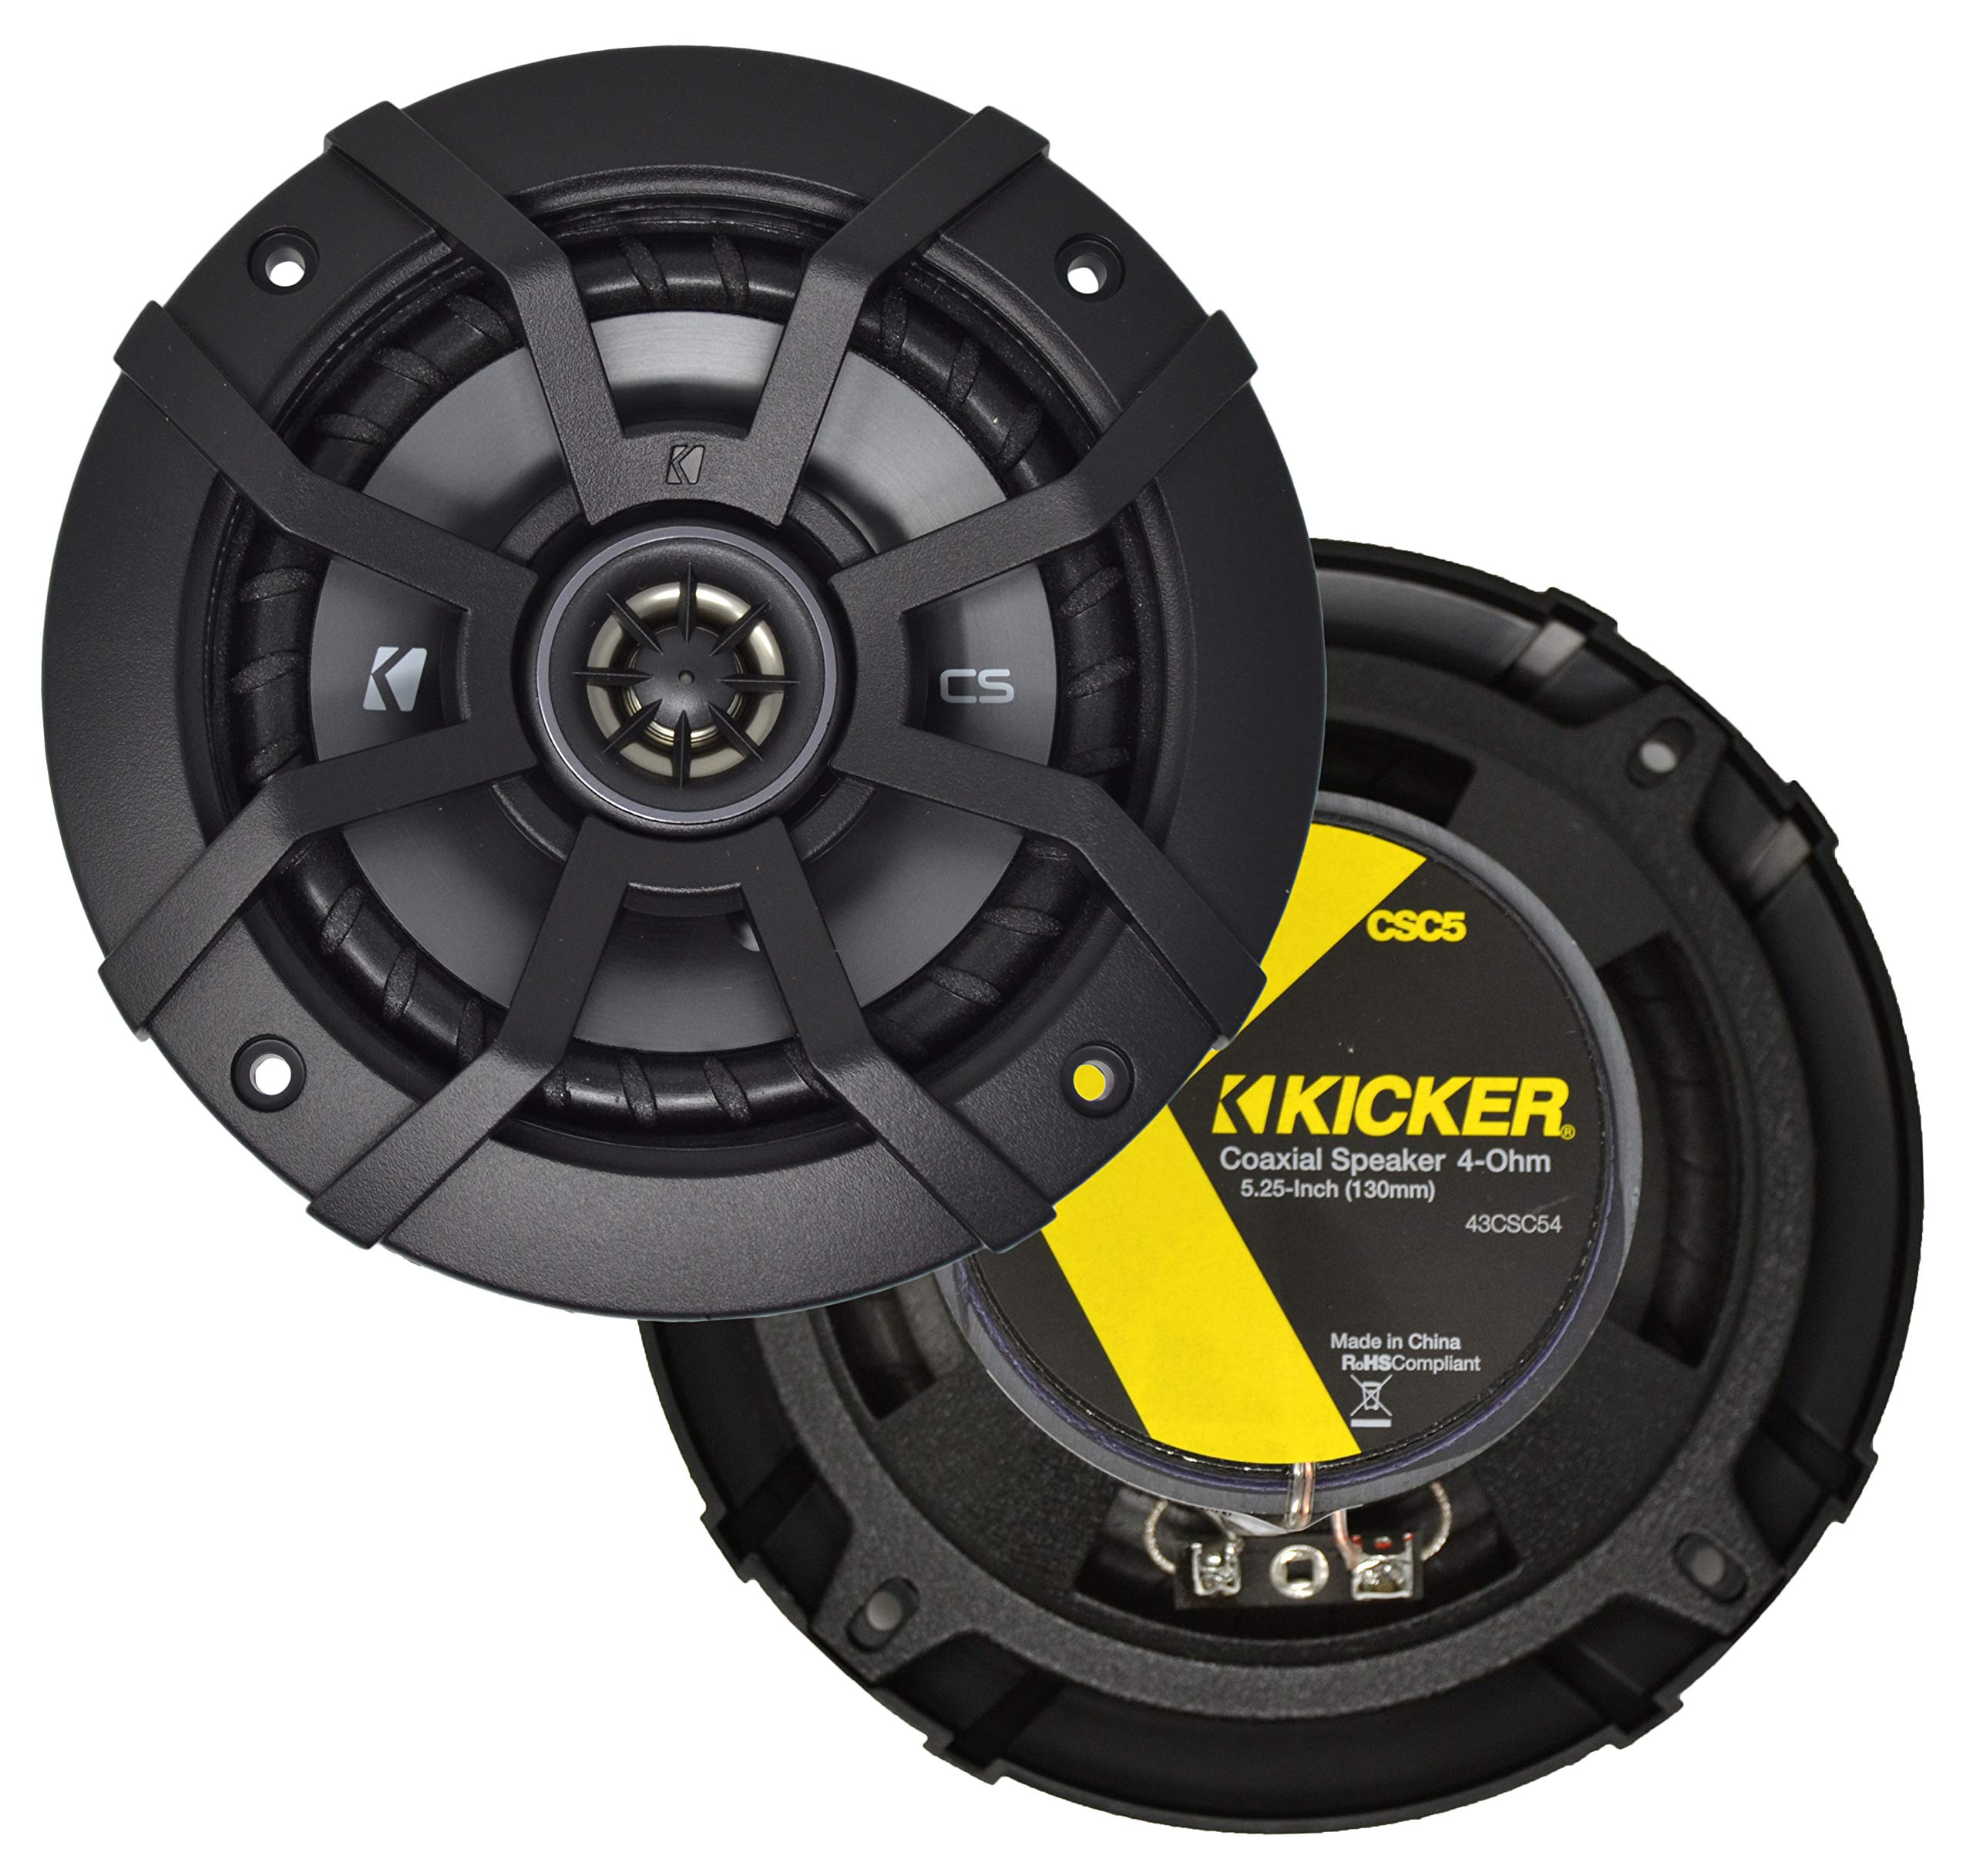 Kicker CSC5 5.25'' 225W 2 Way 4 Ohm Coaxial Car Audio Speakers, Pair | 43CSC54 by KICKER